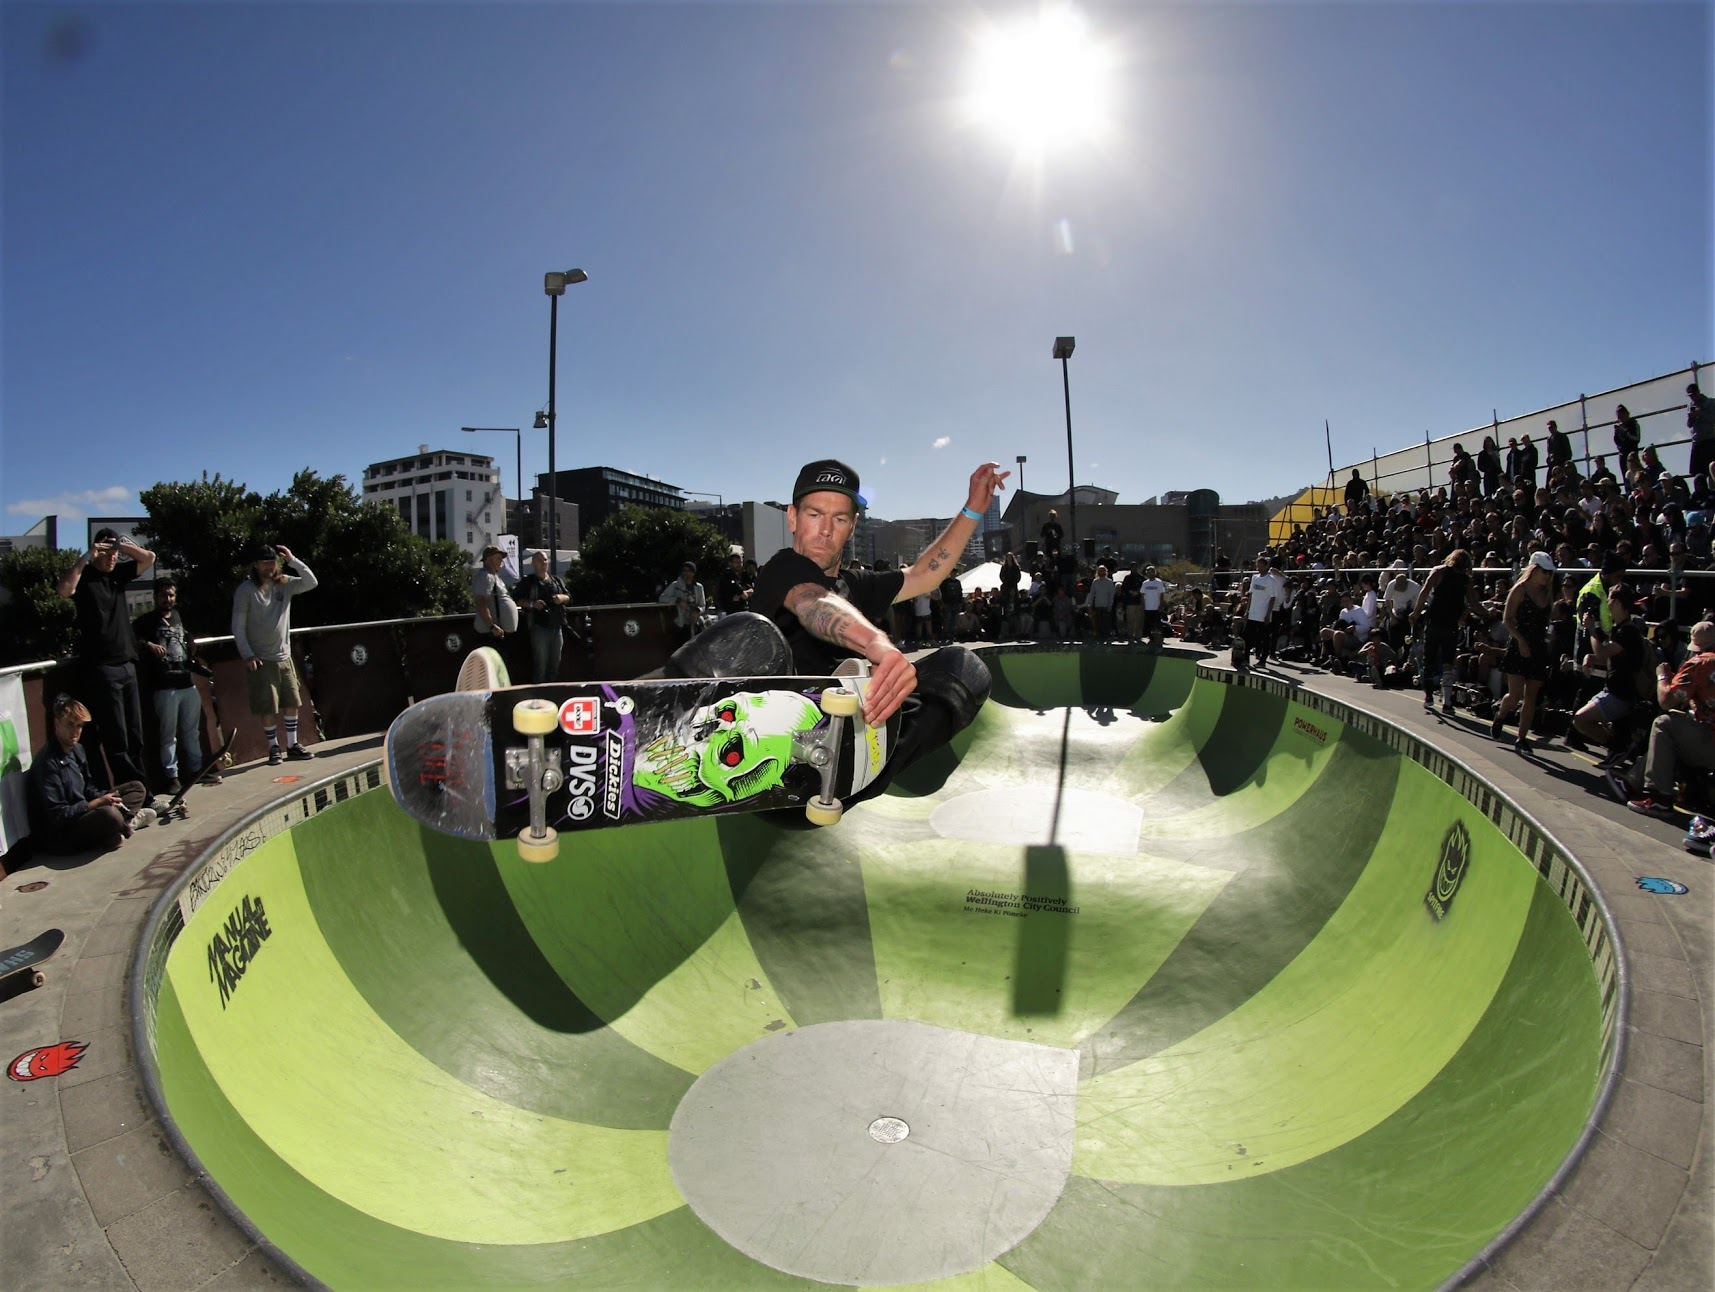 ChrisWood-FrontsideCrailAir-Photo PaulNewman.JPG